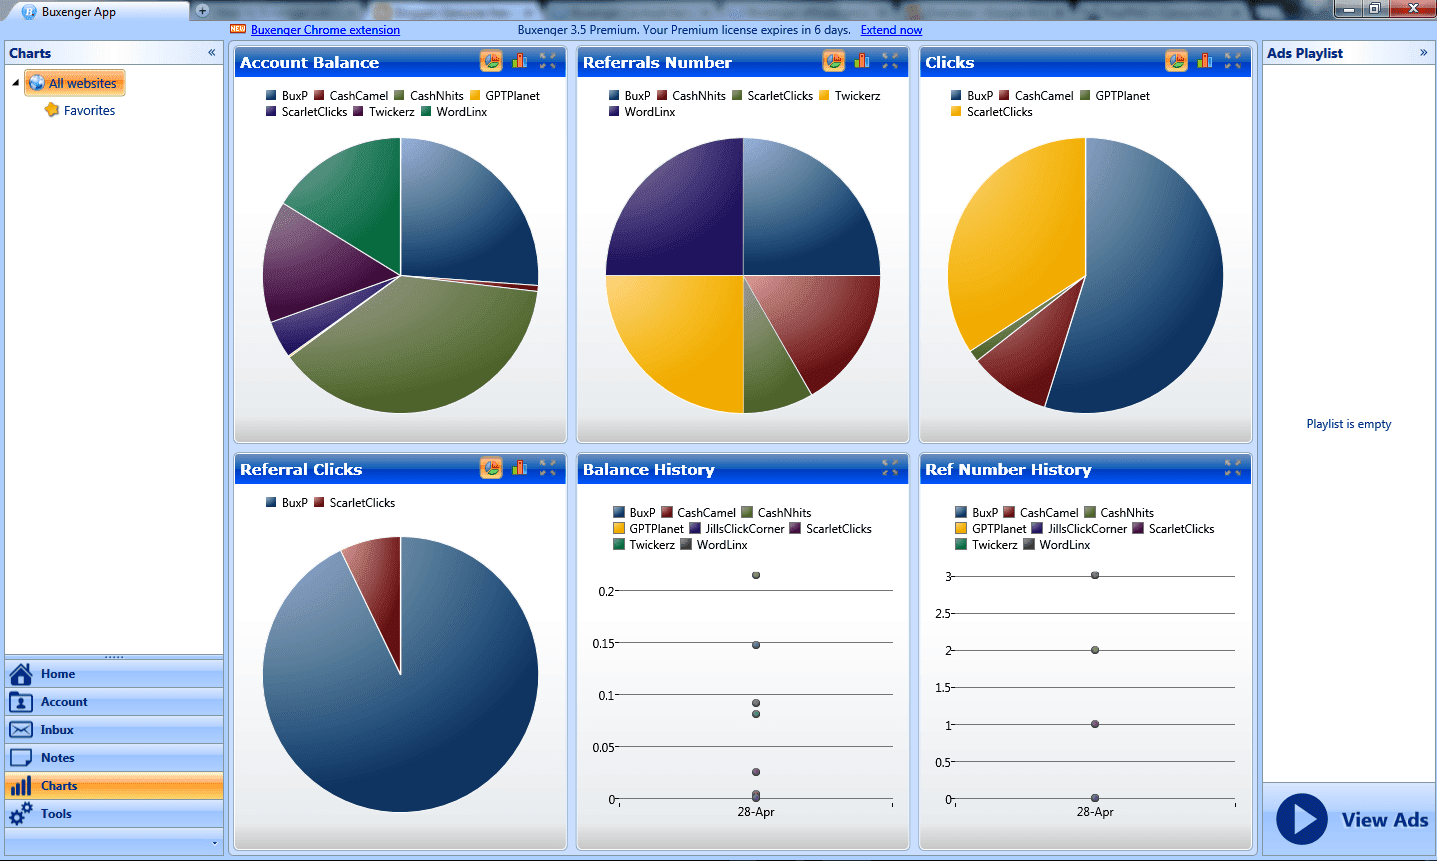 Buxenger charts helps you to monitor the overall progress in terms of pie chart